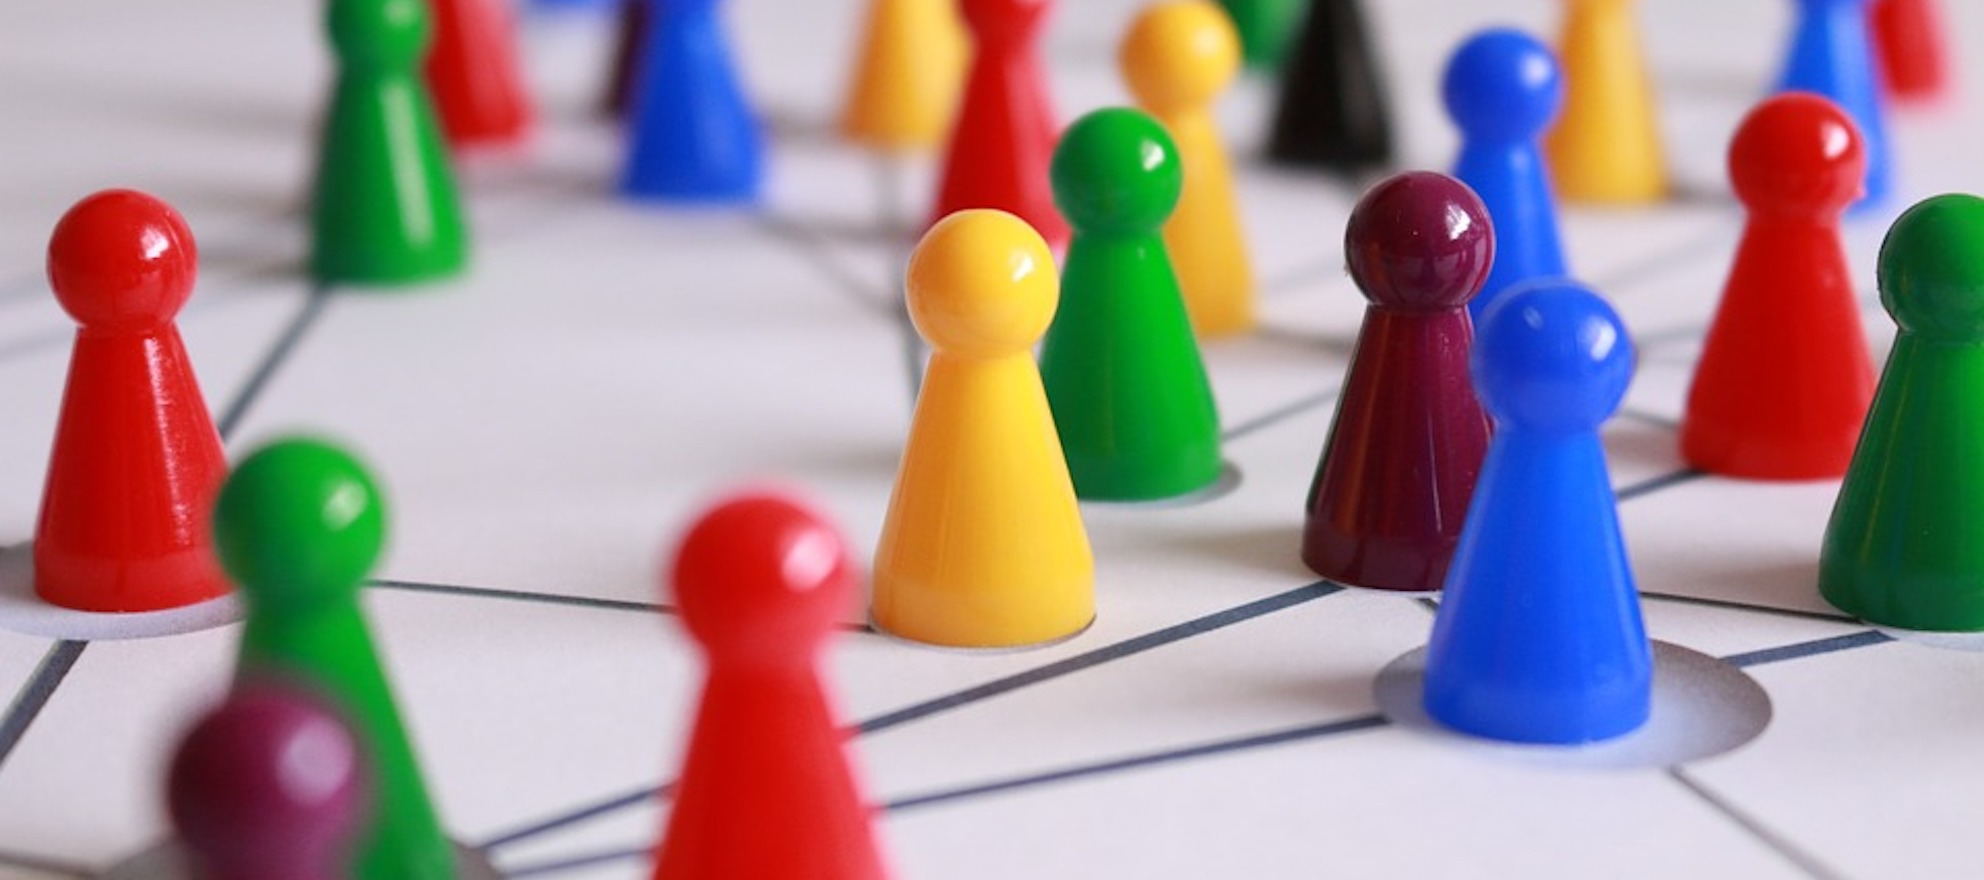 build your network in a new area